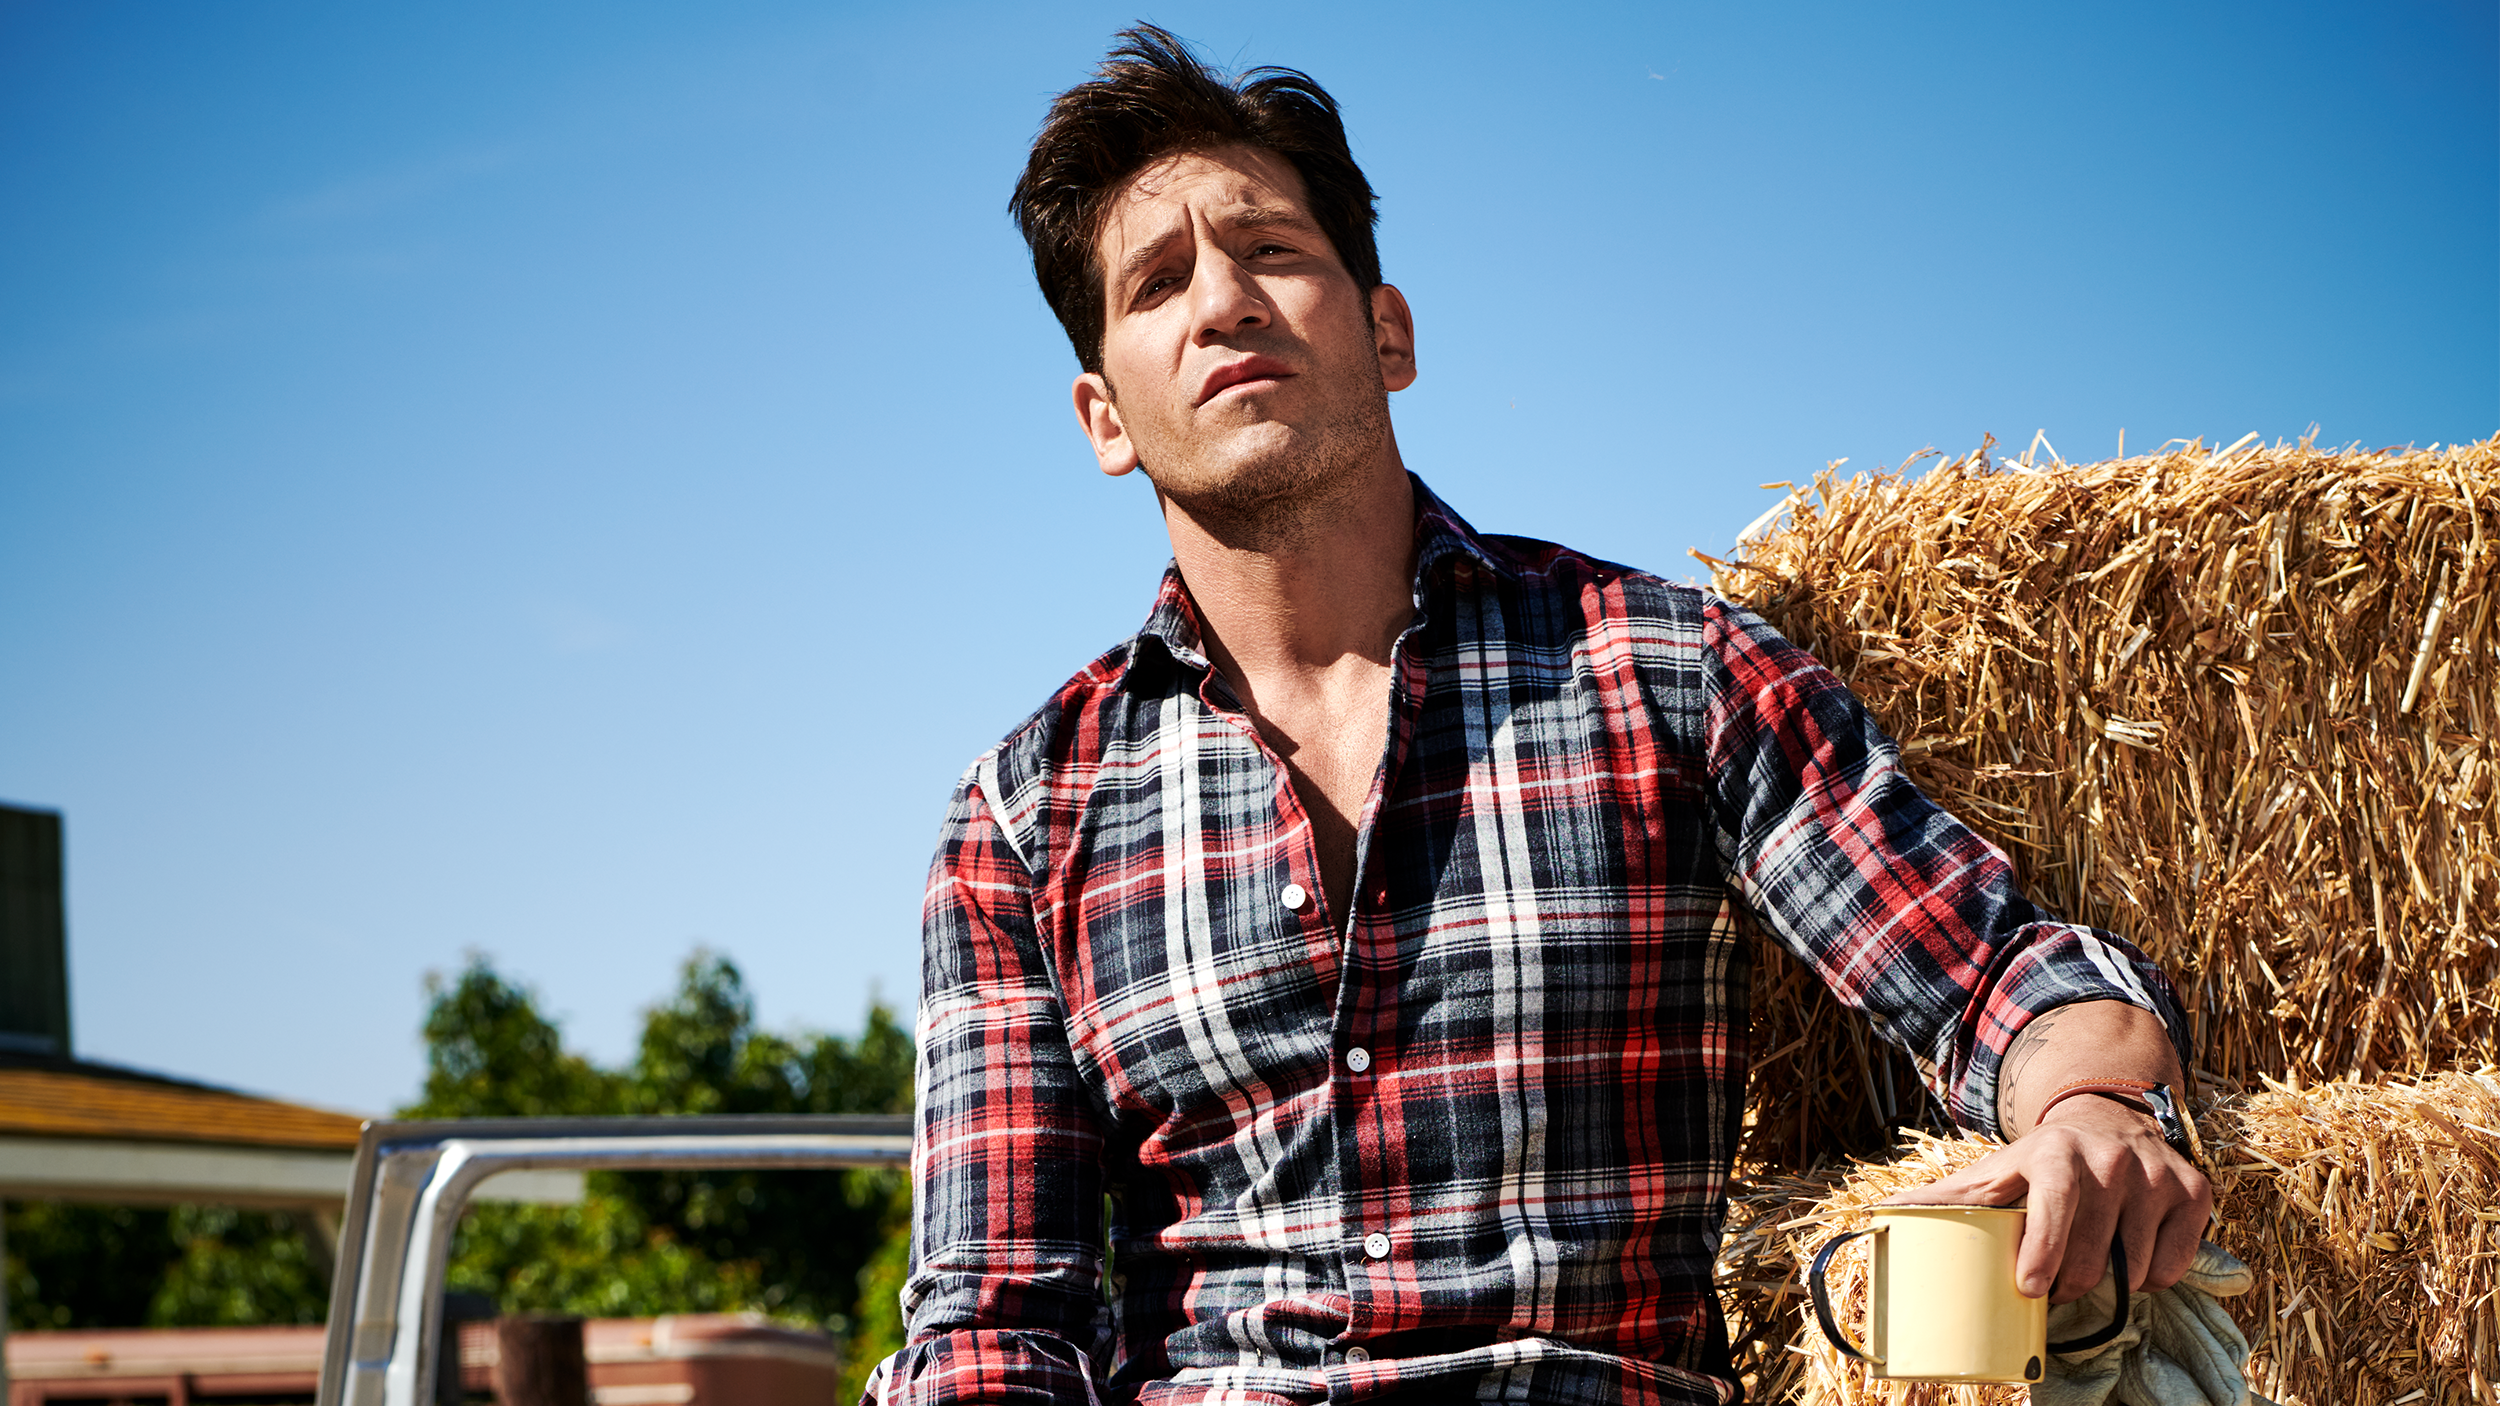 e643522989 The Punisher' Star Jon Bernthal Opens Up About Family, Workouts